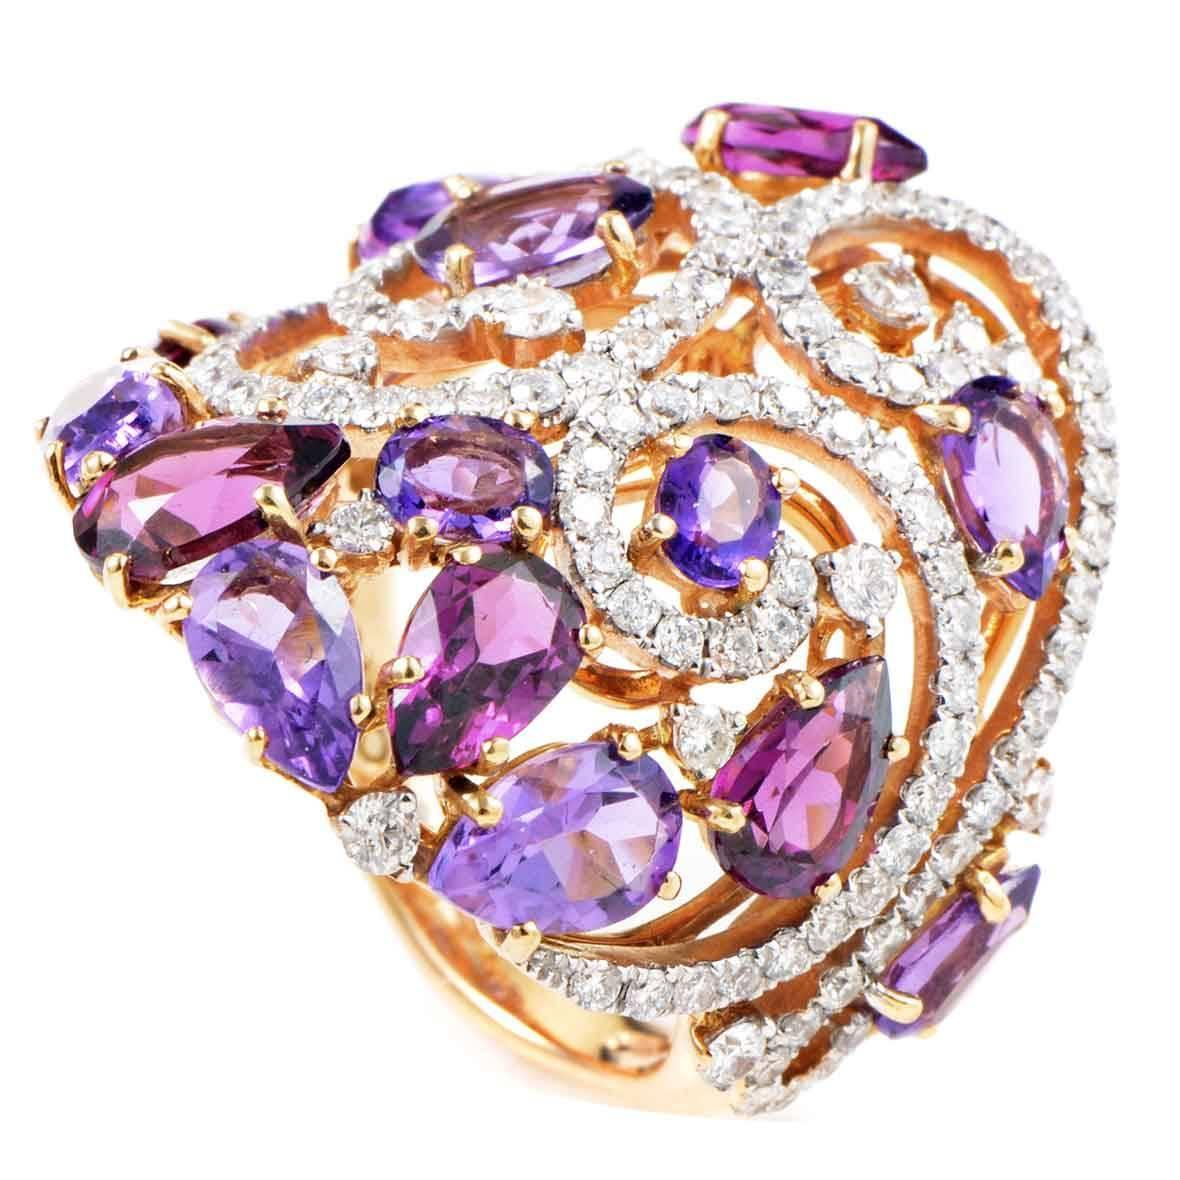 casato tourmaline amethyst diamond gold ring